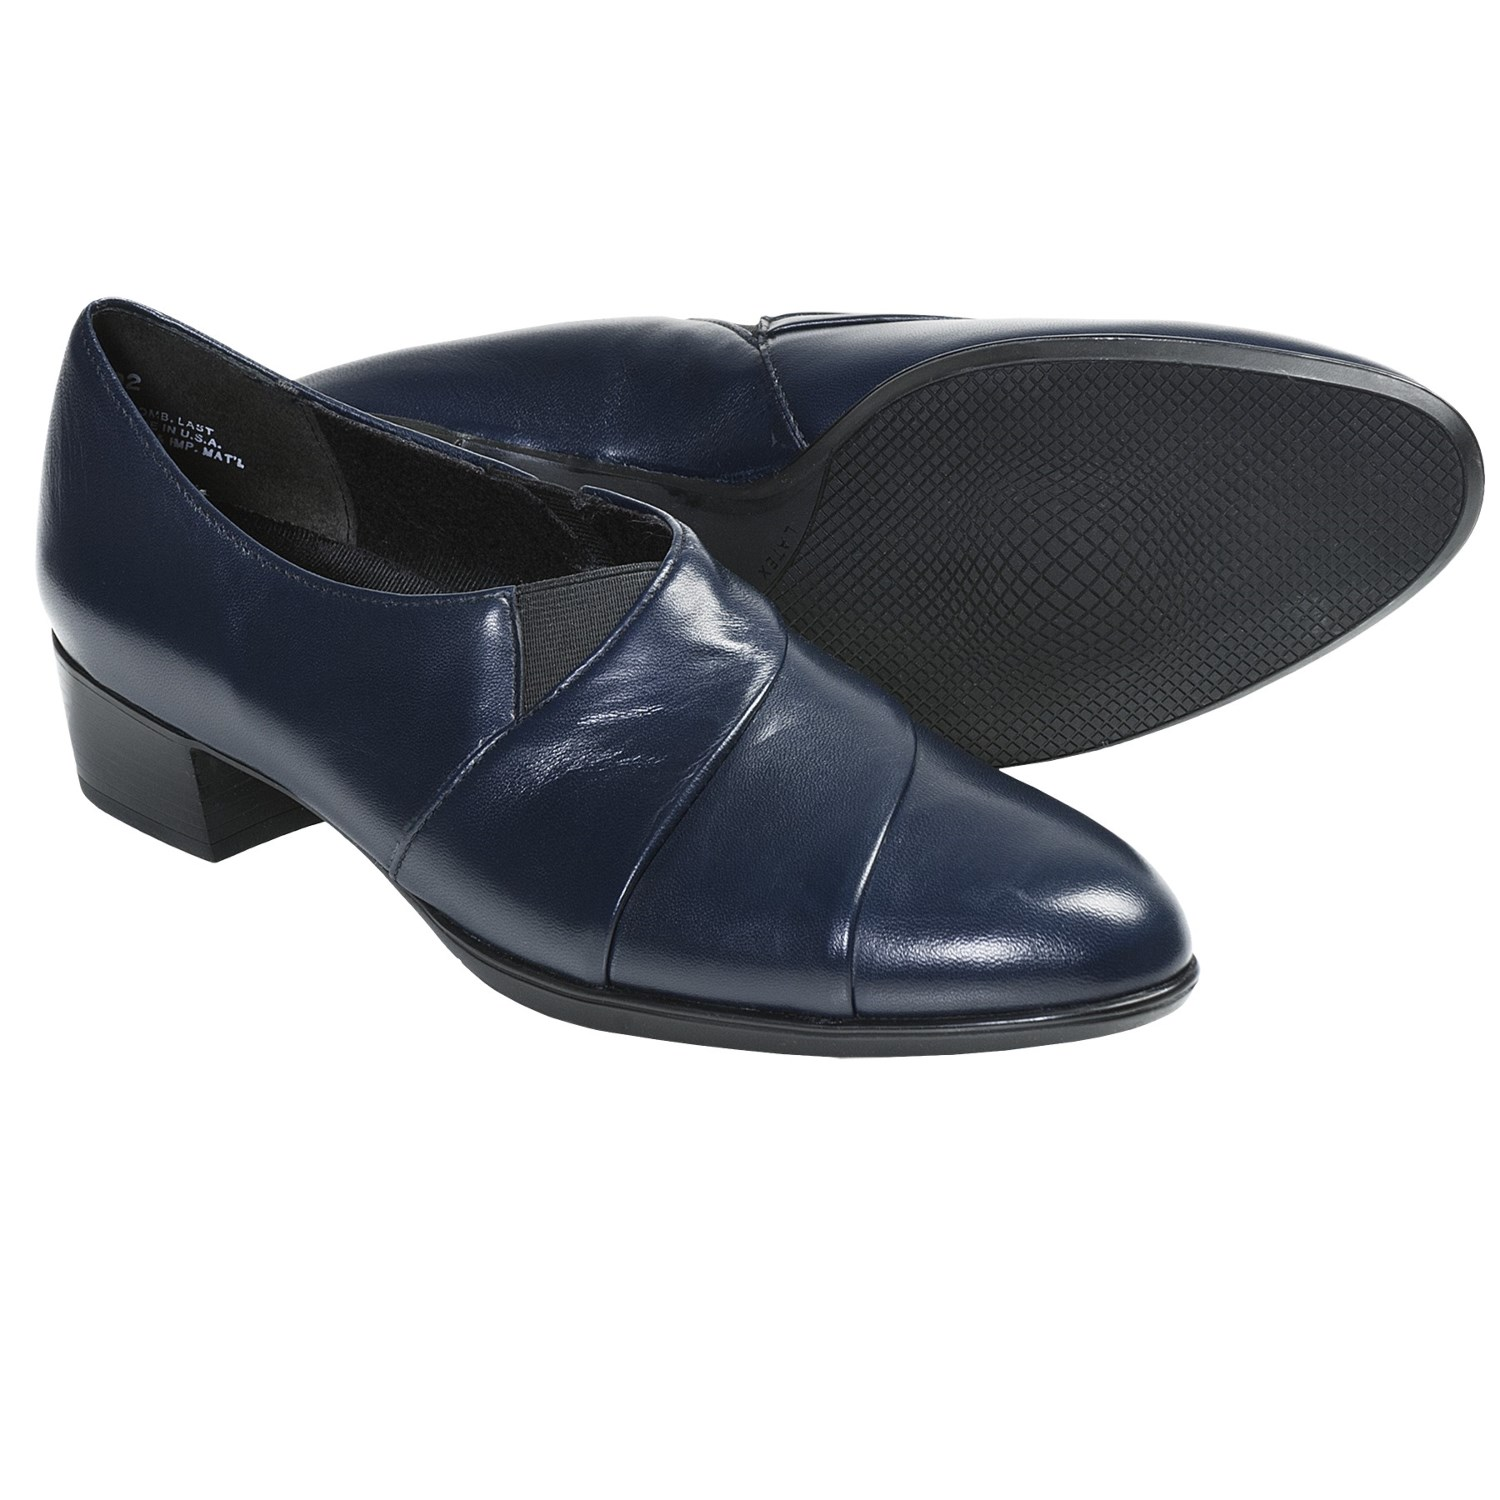 munro-american-alison-shoes-leather-for-women-in-navy~p~5341x_04~1500